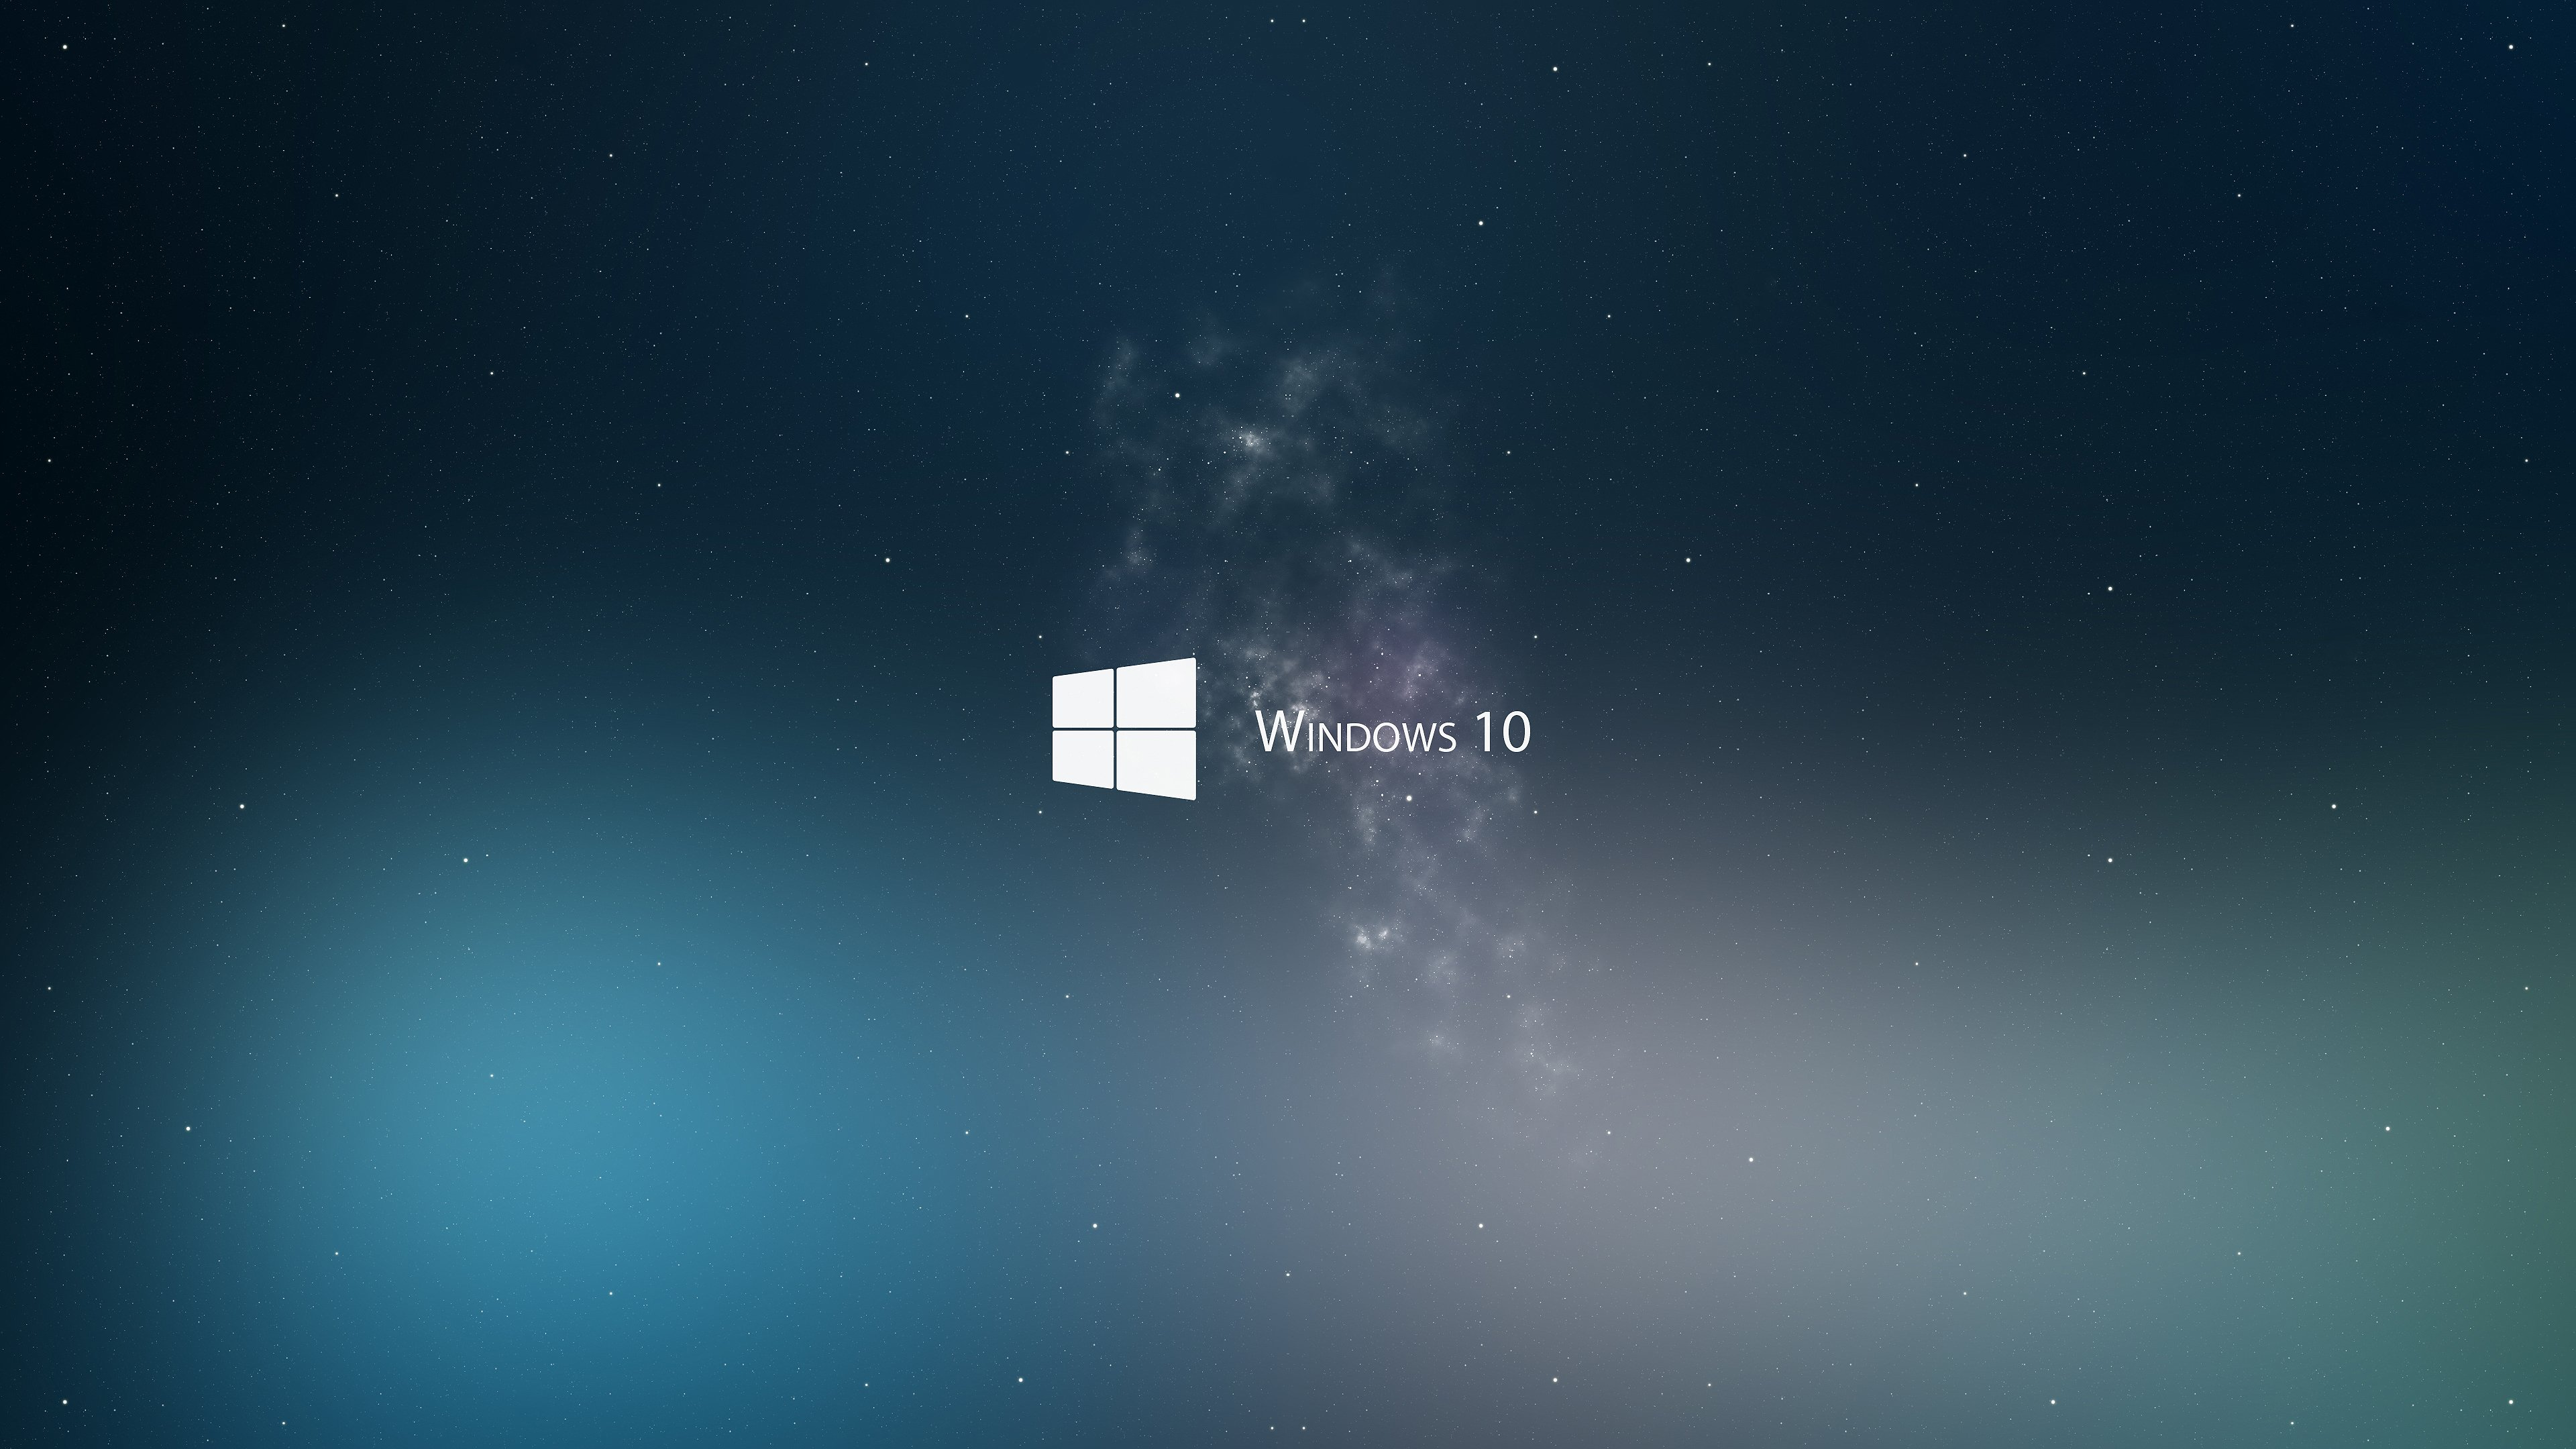 Windows 10 Wallpaper 3200x1800 Wallpapersafari